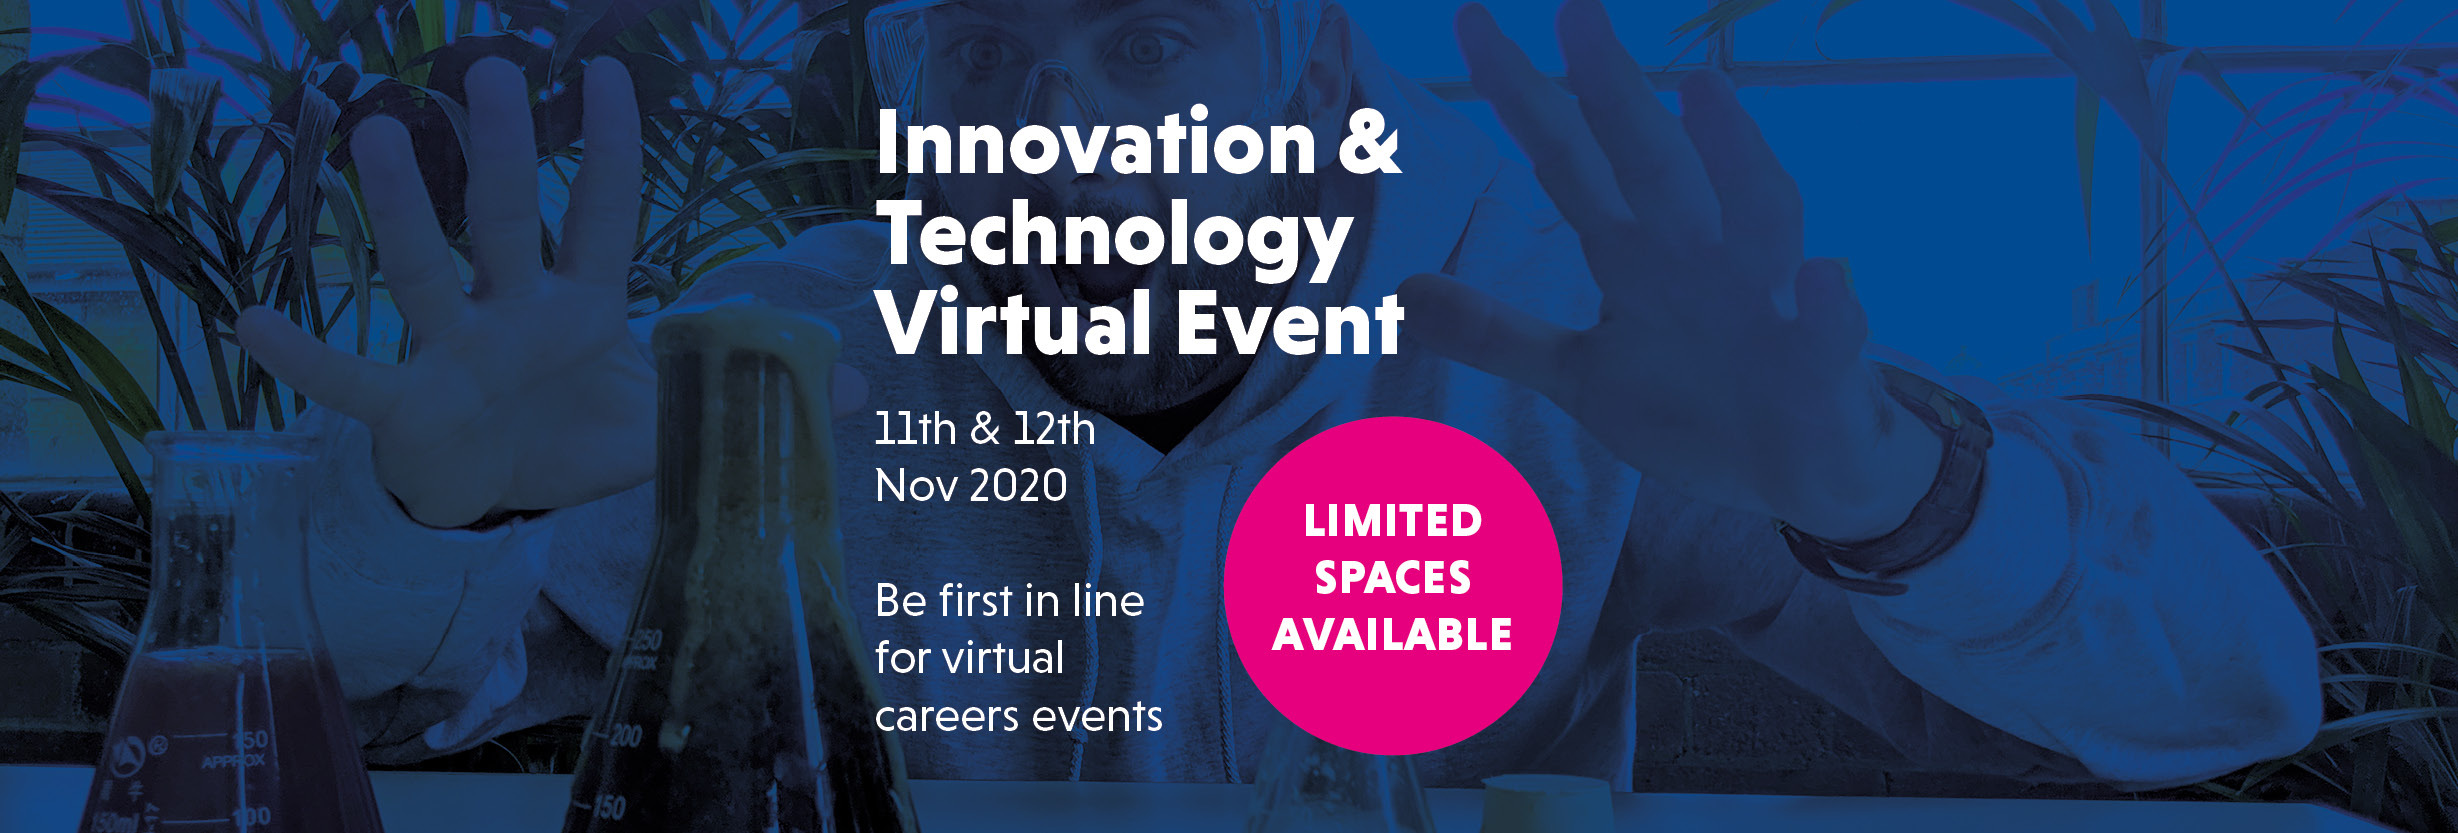 innovation & technology virtual event